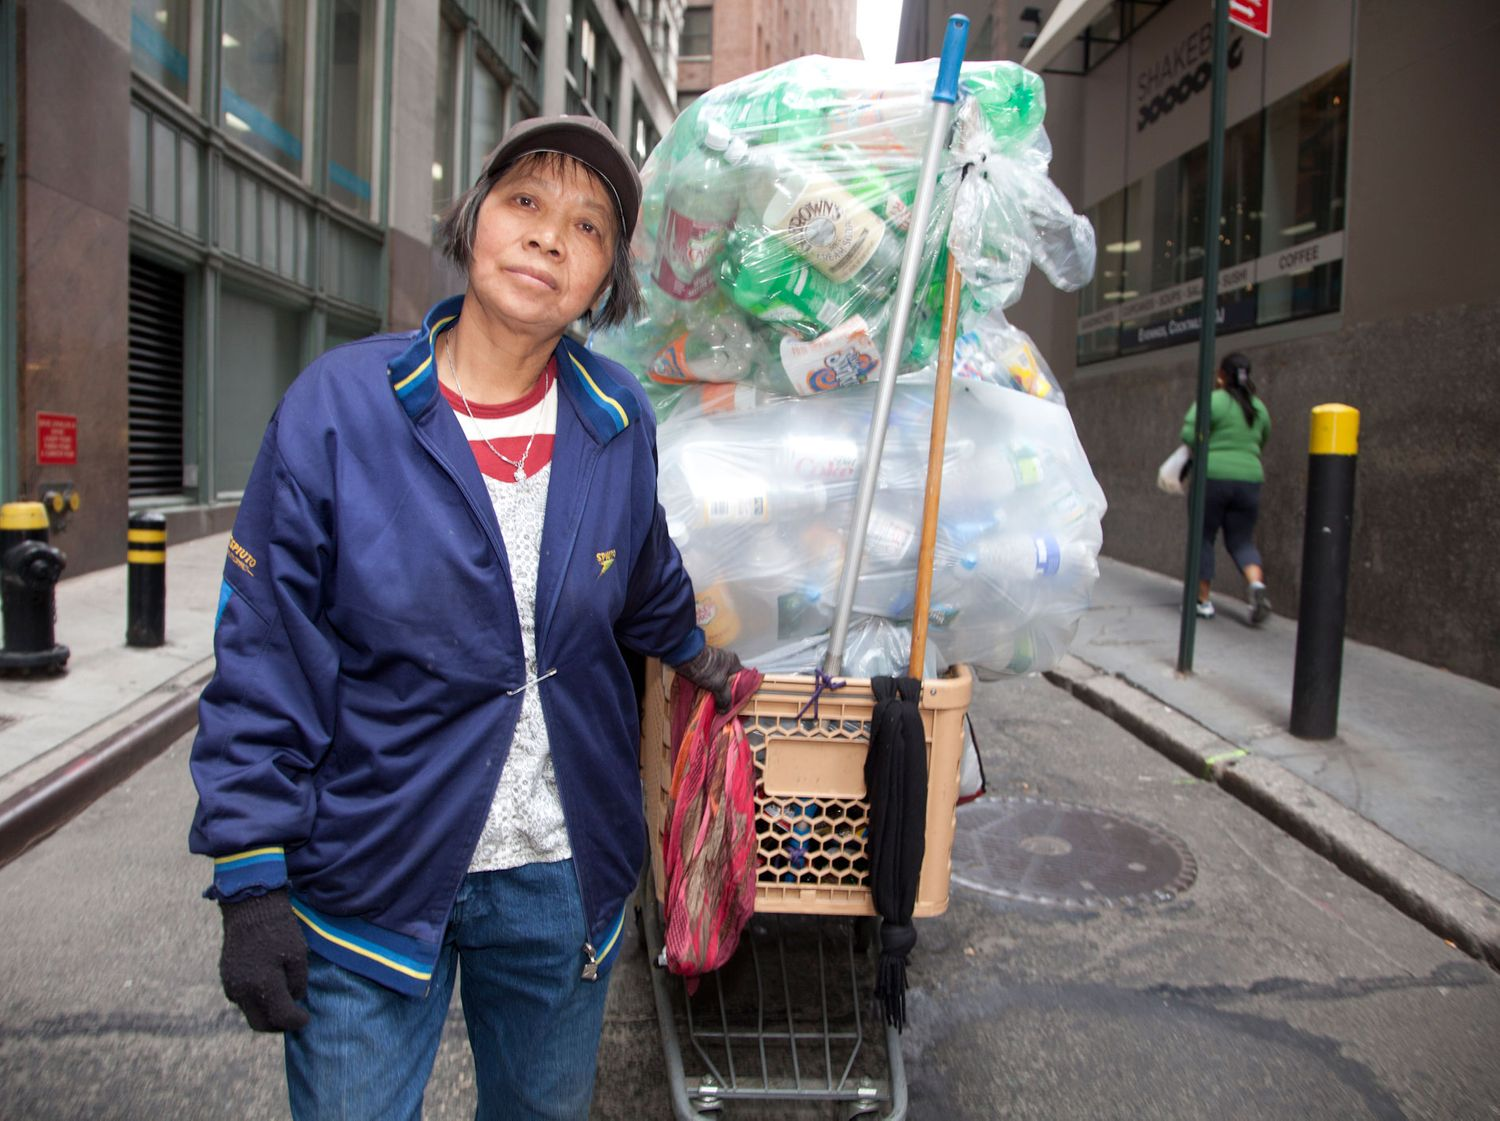 Lilly, the main character followed in the documentary Redemption (2013), pulls bottles and cans collected from NYC streets